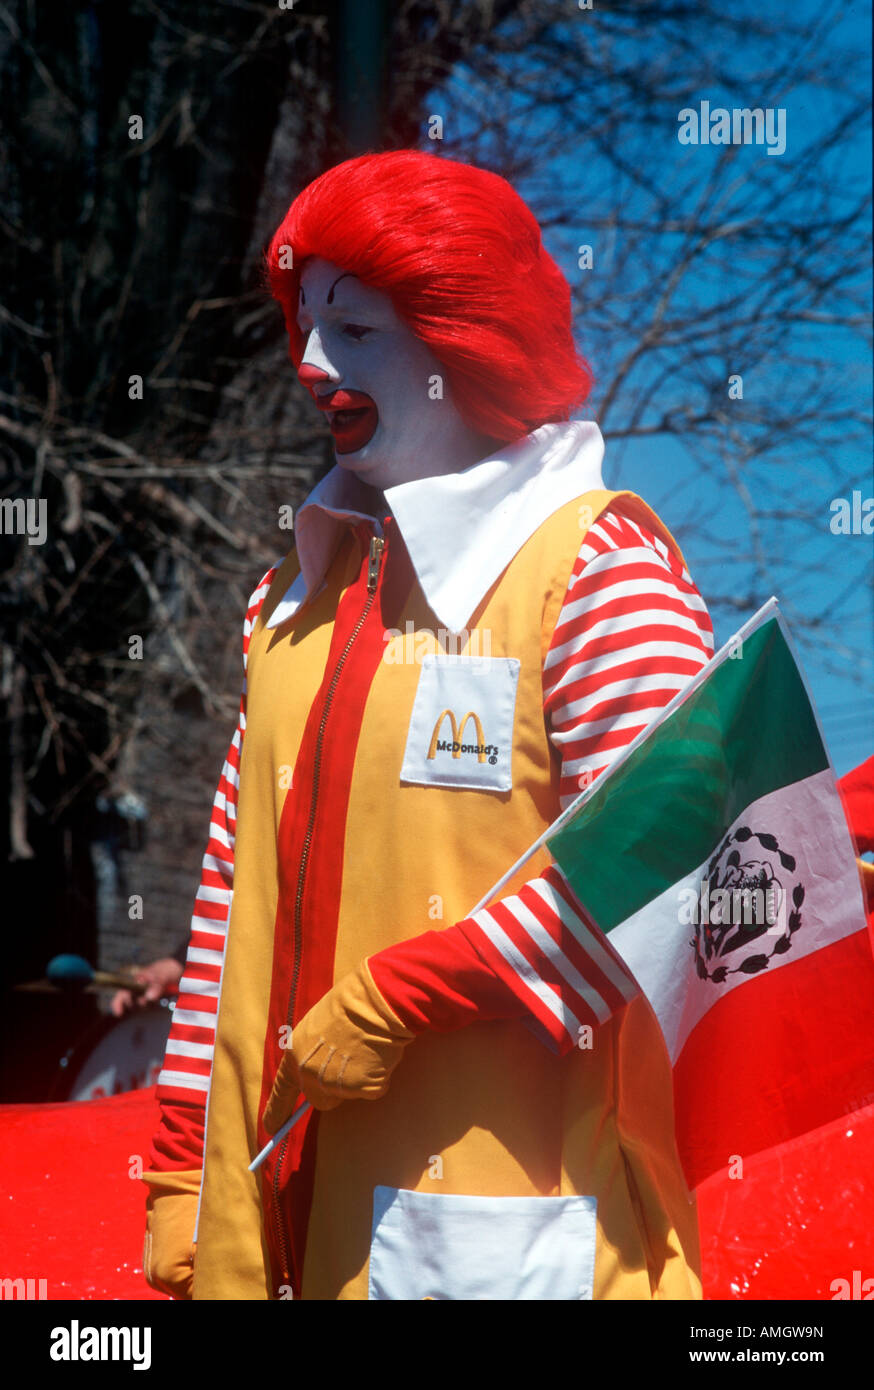 Ronald McDonald with Mexican flag. - Stock Image